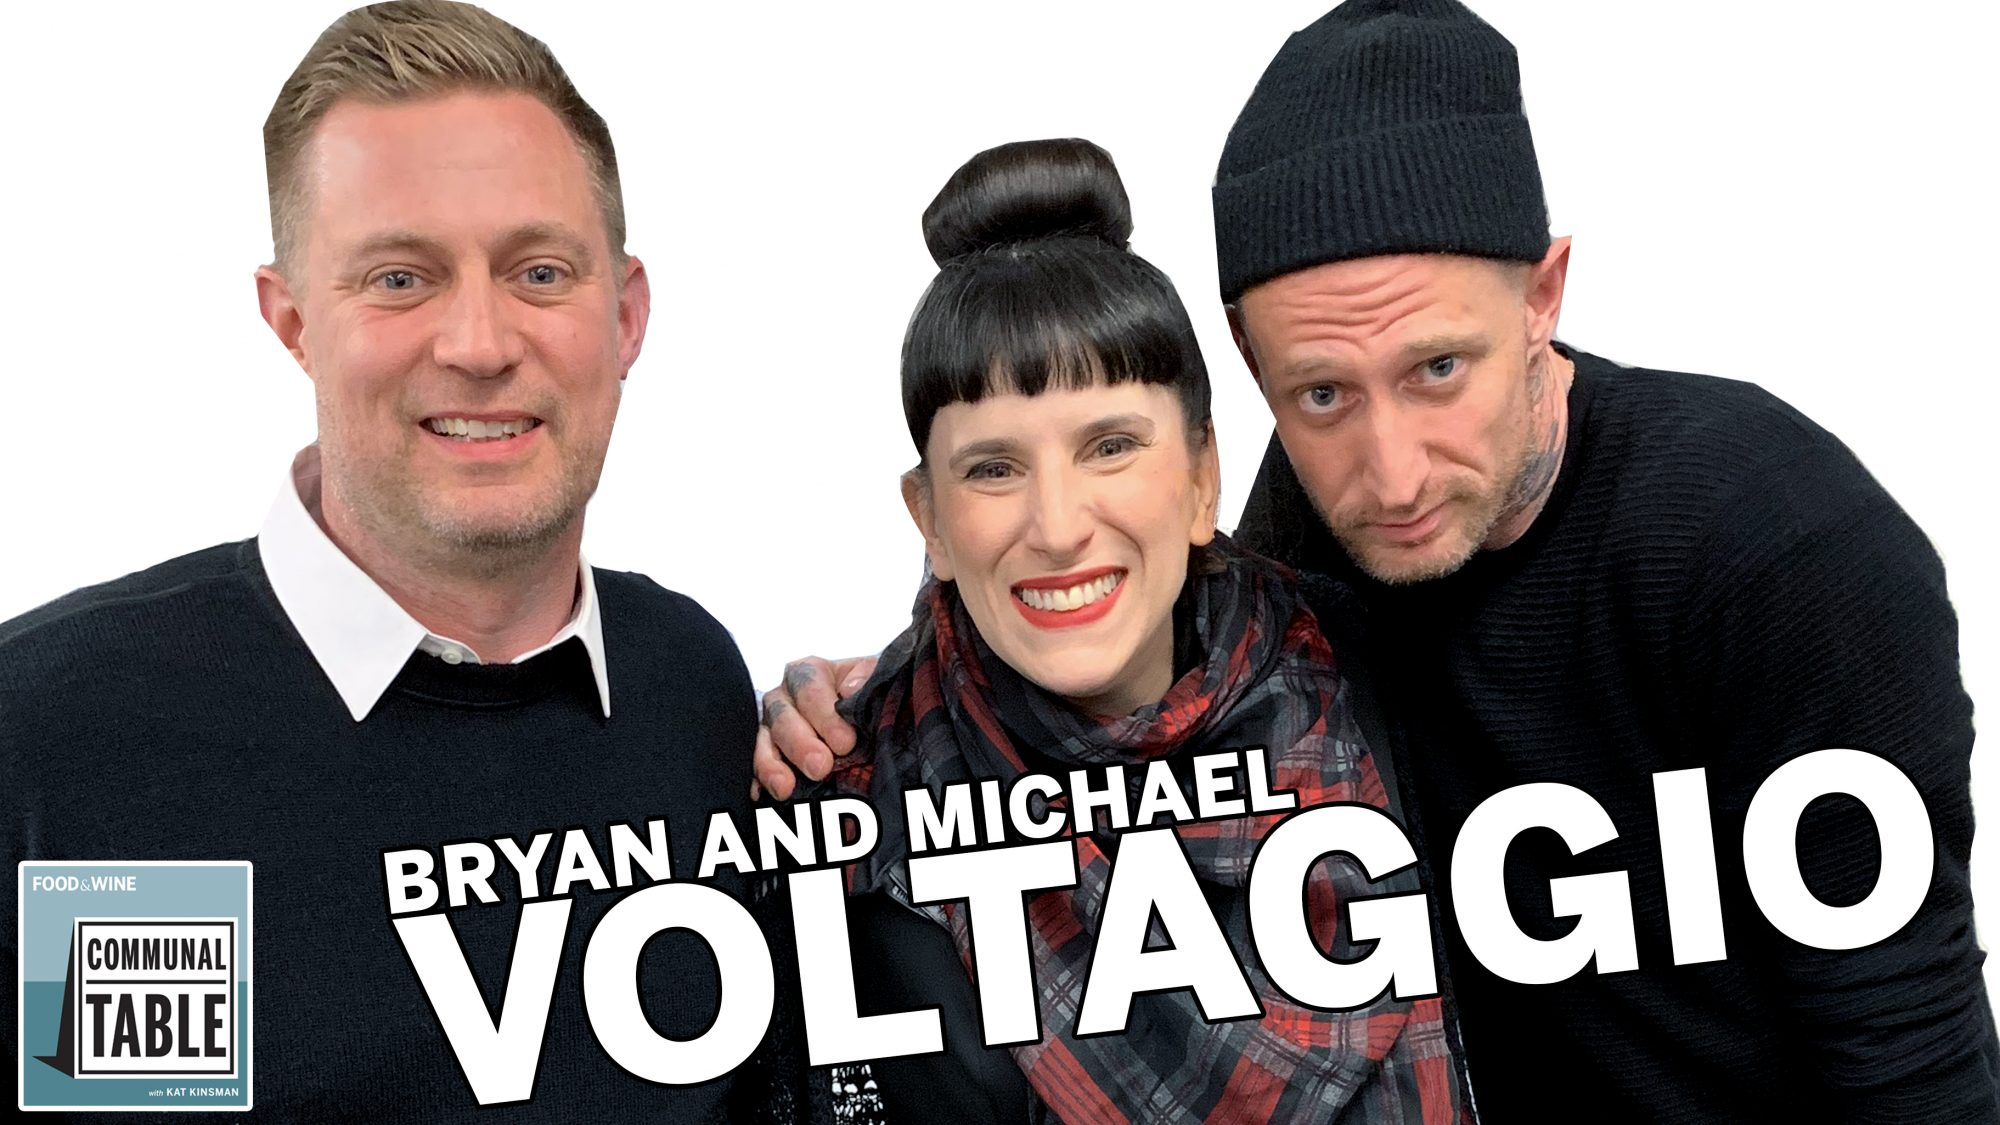 Communal Table Podcast: Bryan and Michael Voltaggio